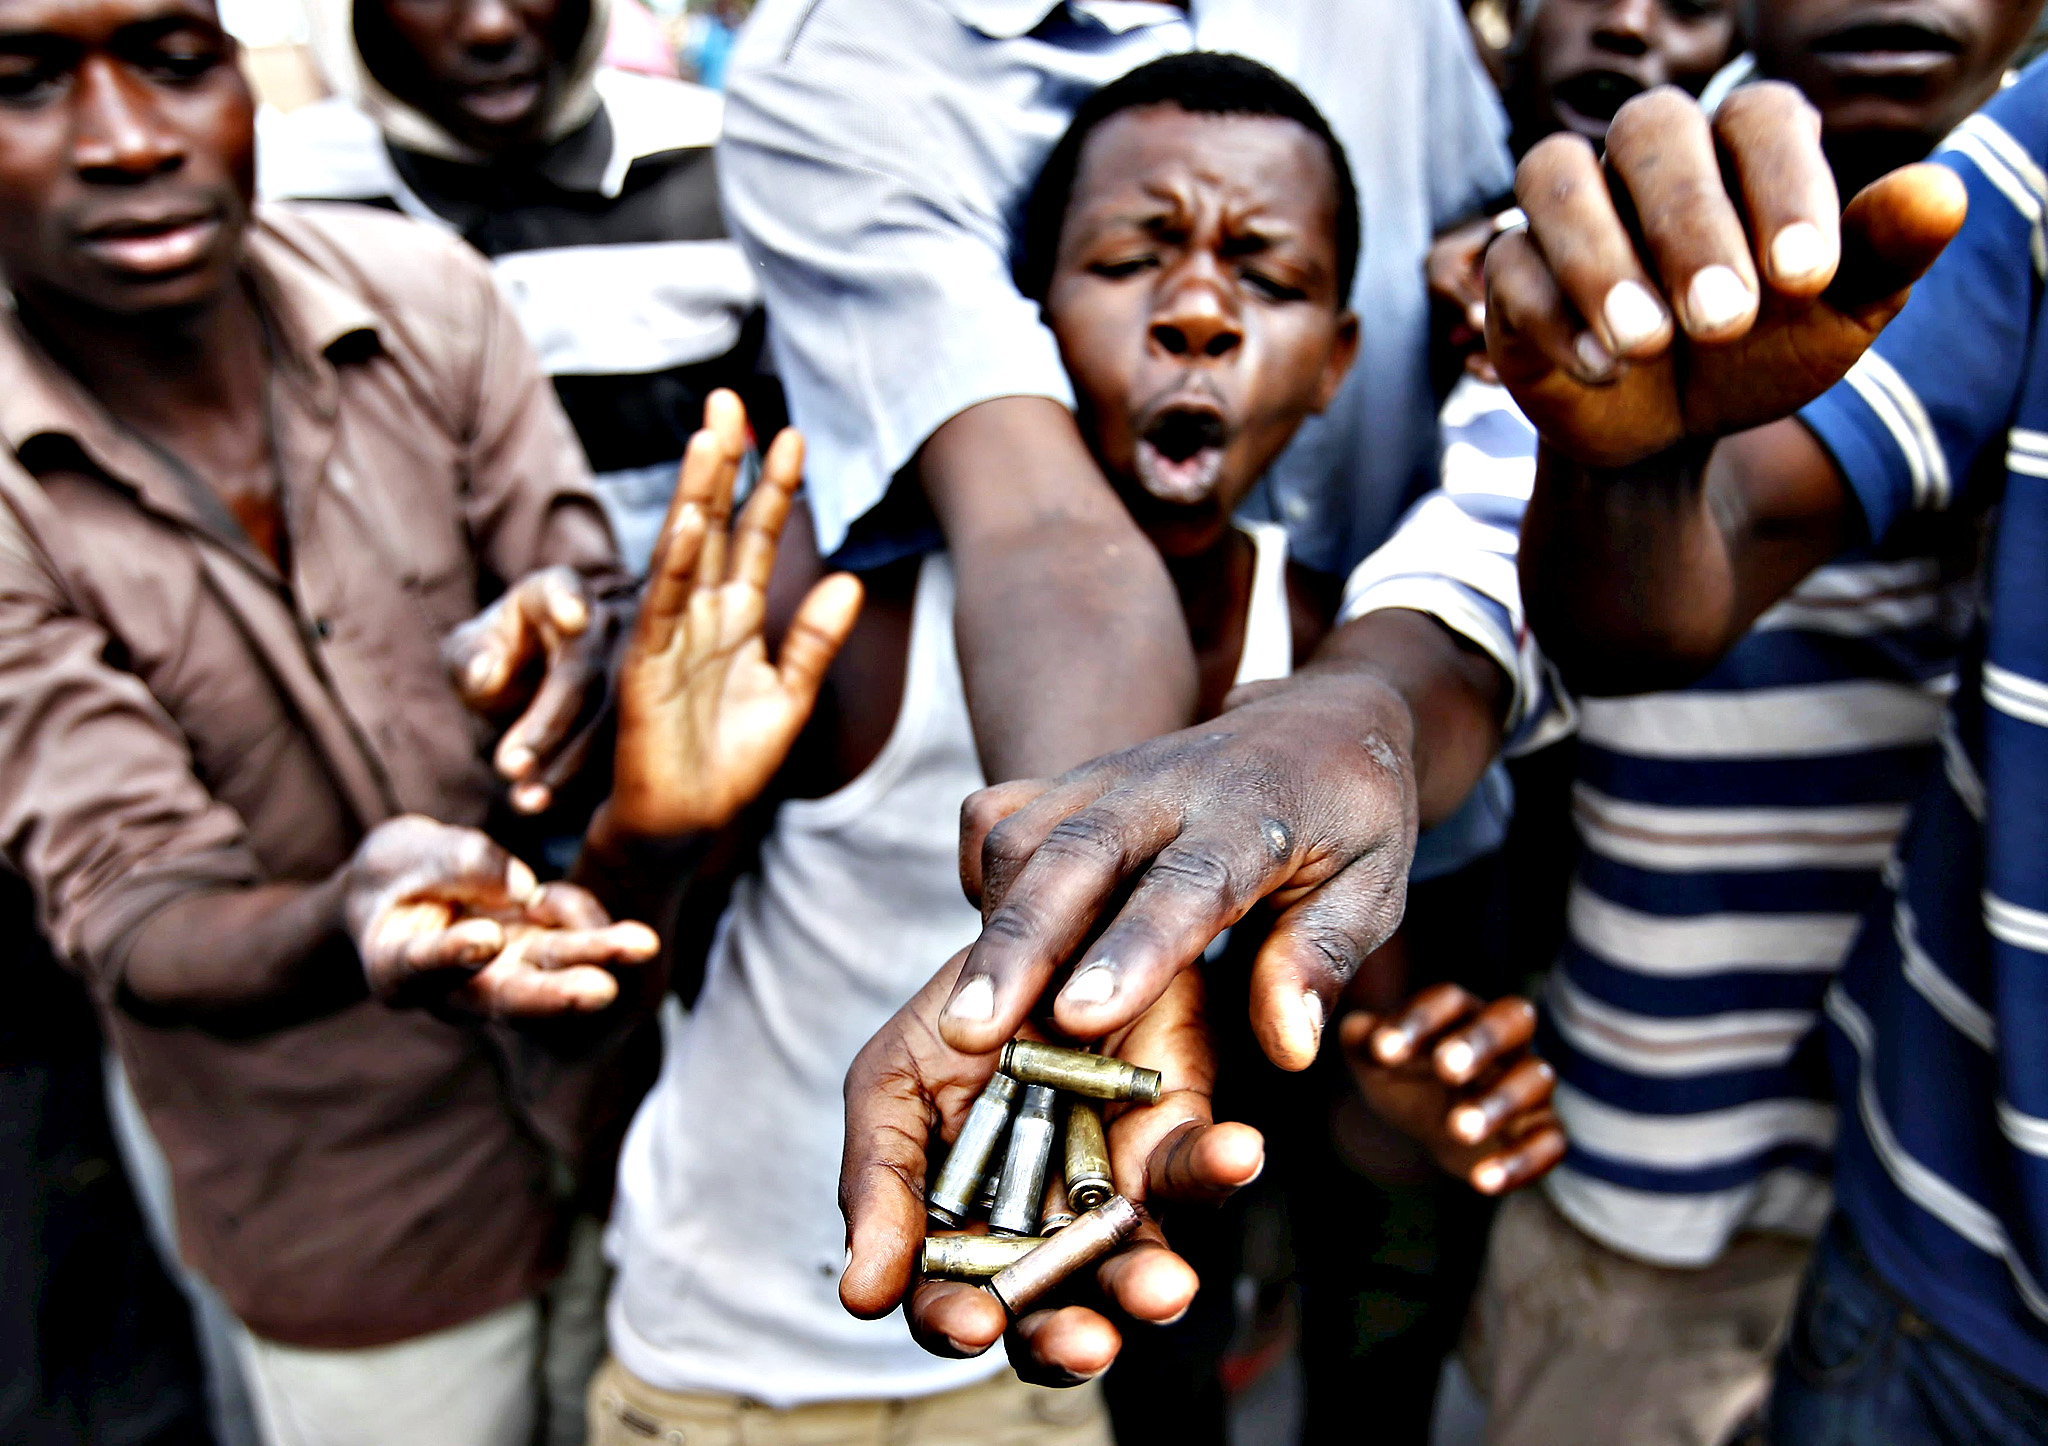 Protesters show bullet casings during a protest against Burundi President Pierre Nkurunziza and his bid for a third term in Bujumbura, Burundi on Tuesday